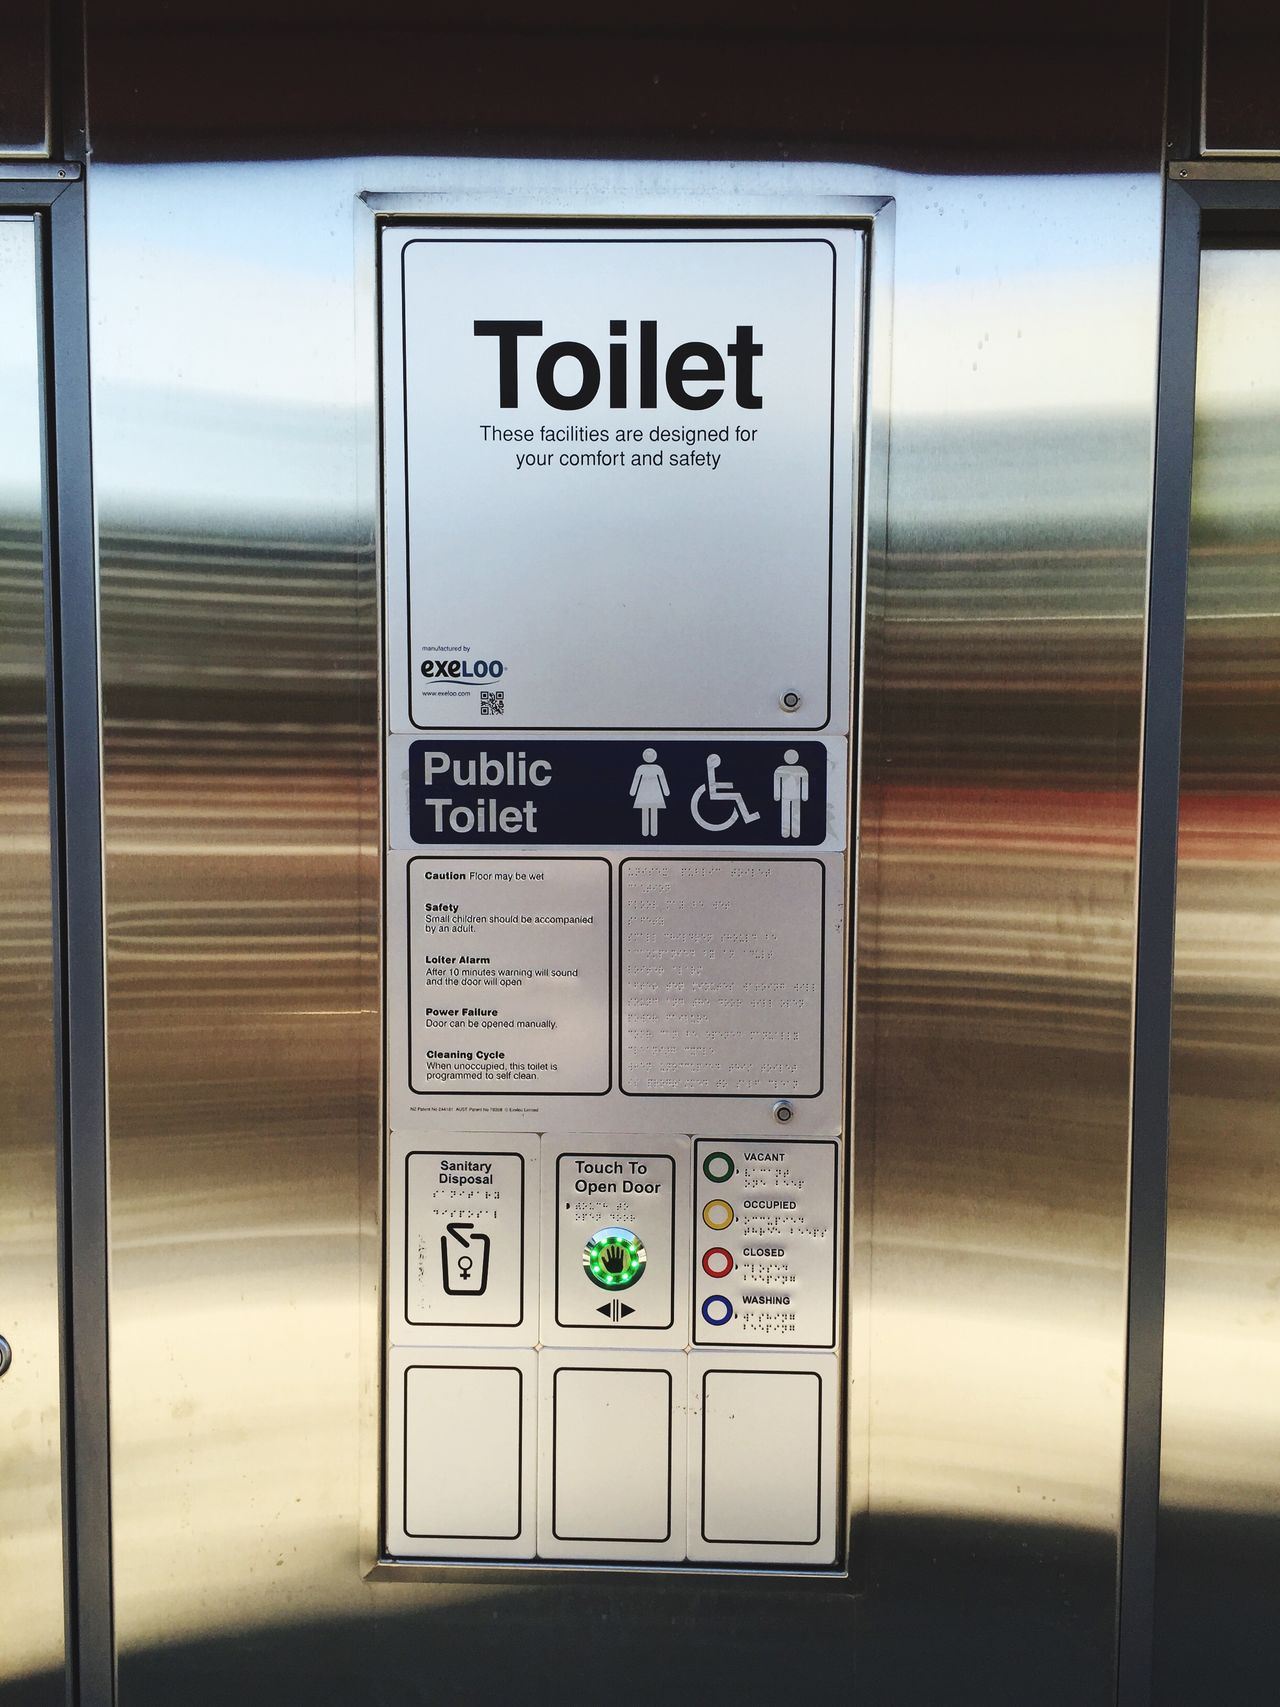 Toilet Technology Toilet Sign Toilets Around The World Rest Room Wc High Tech Awesome WOW Public Toilet